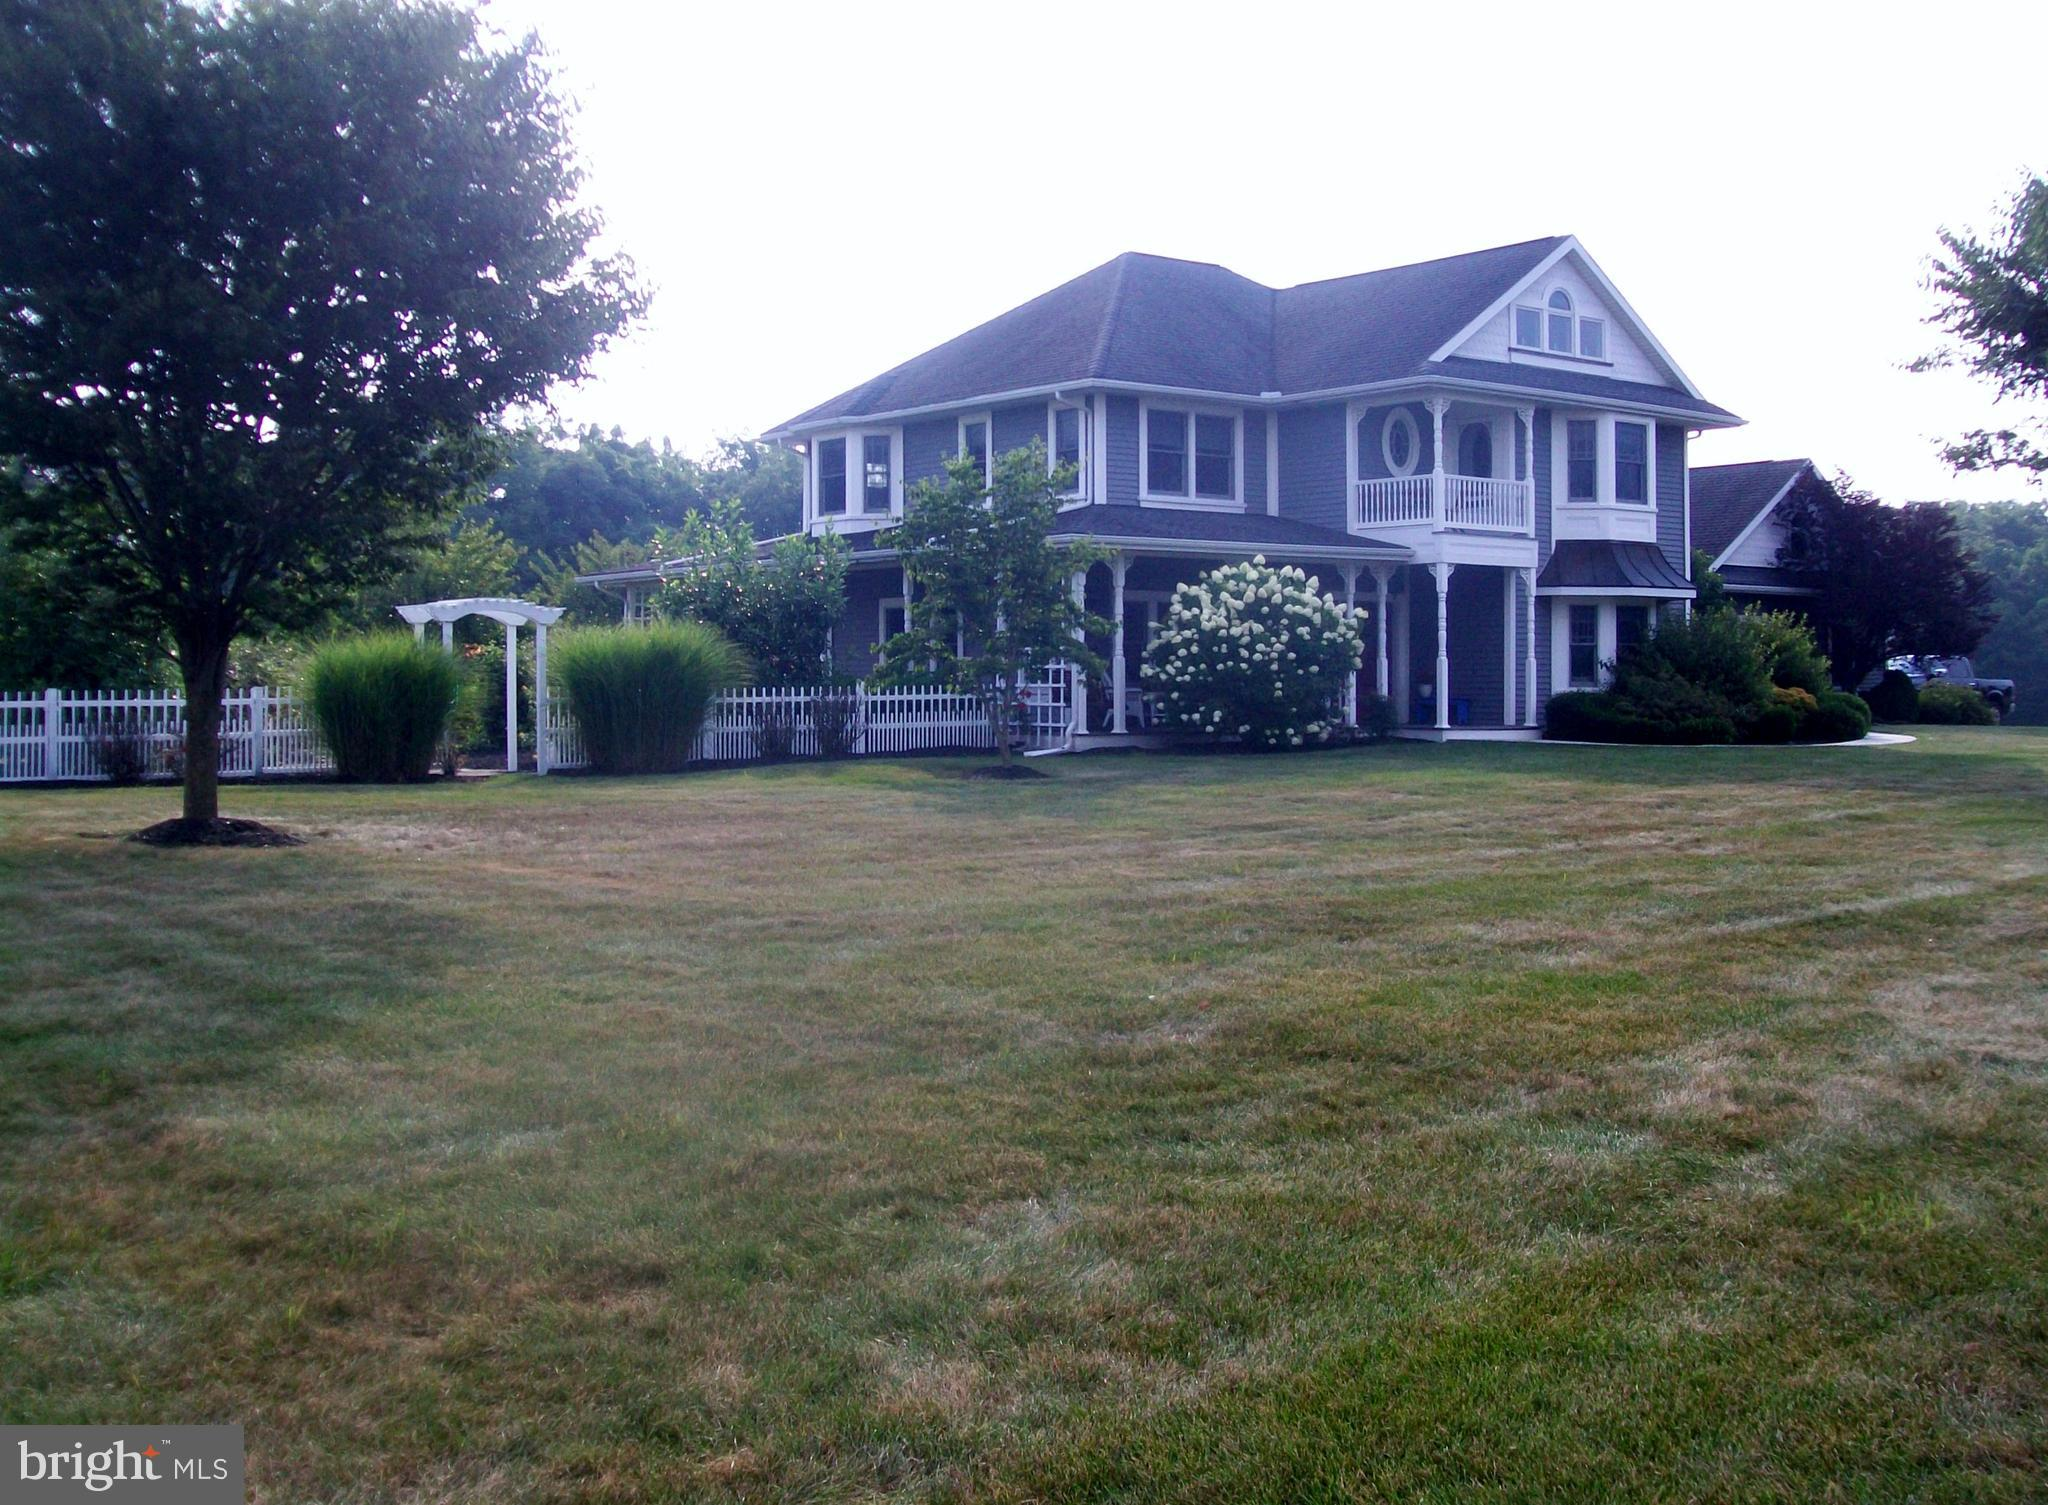 144 S HOERNERSTOWN ROAD, HUMMELSTOWN, PA 17036